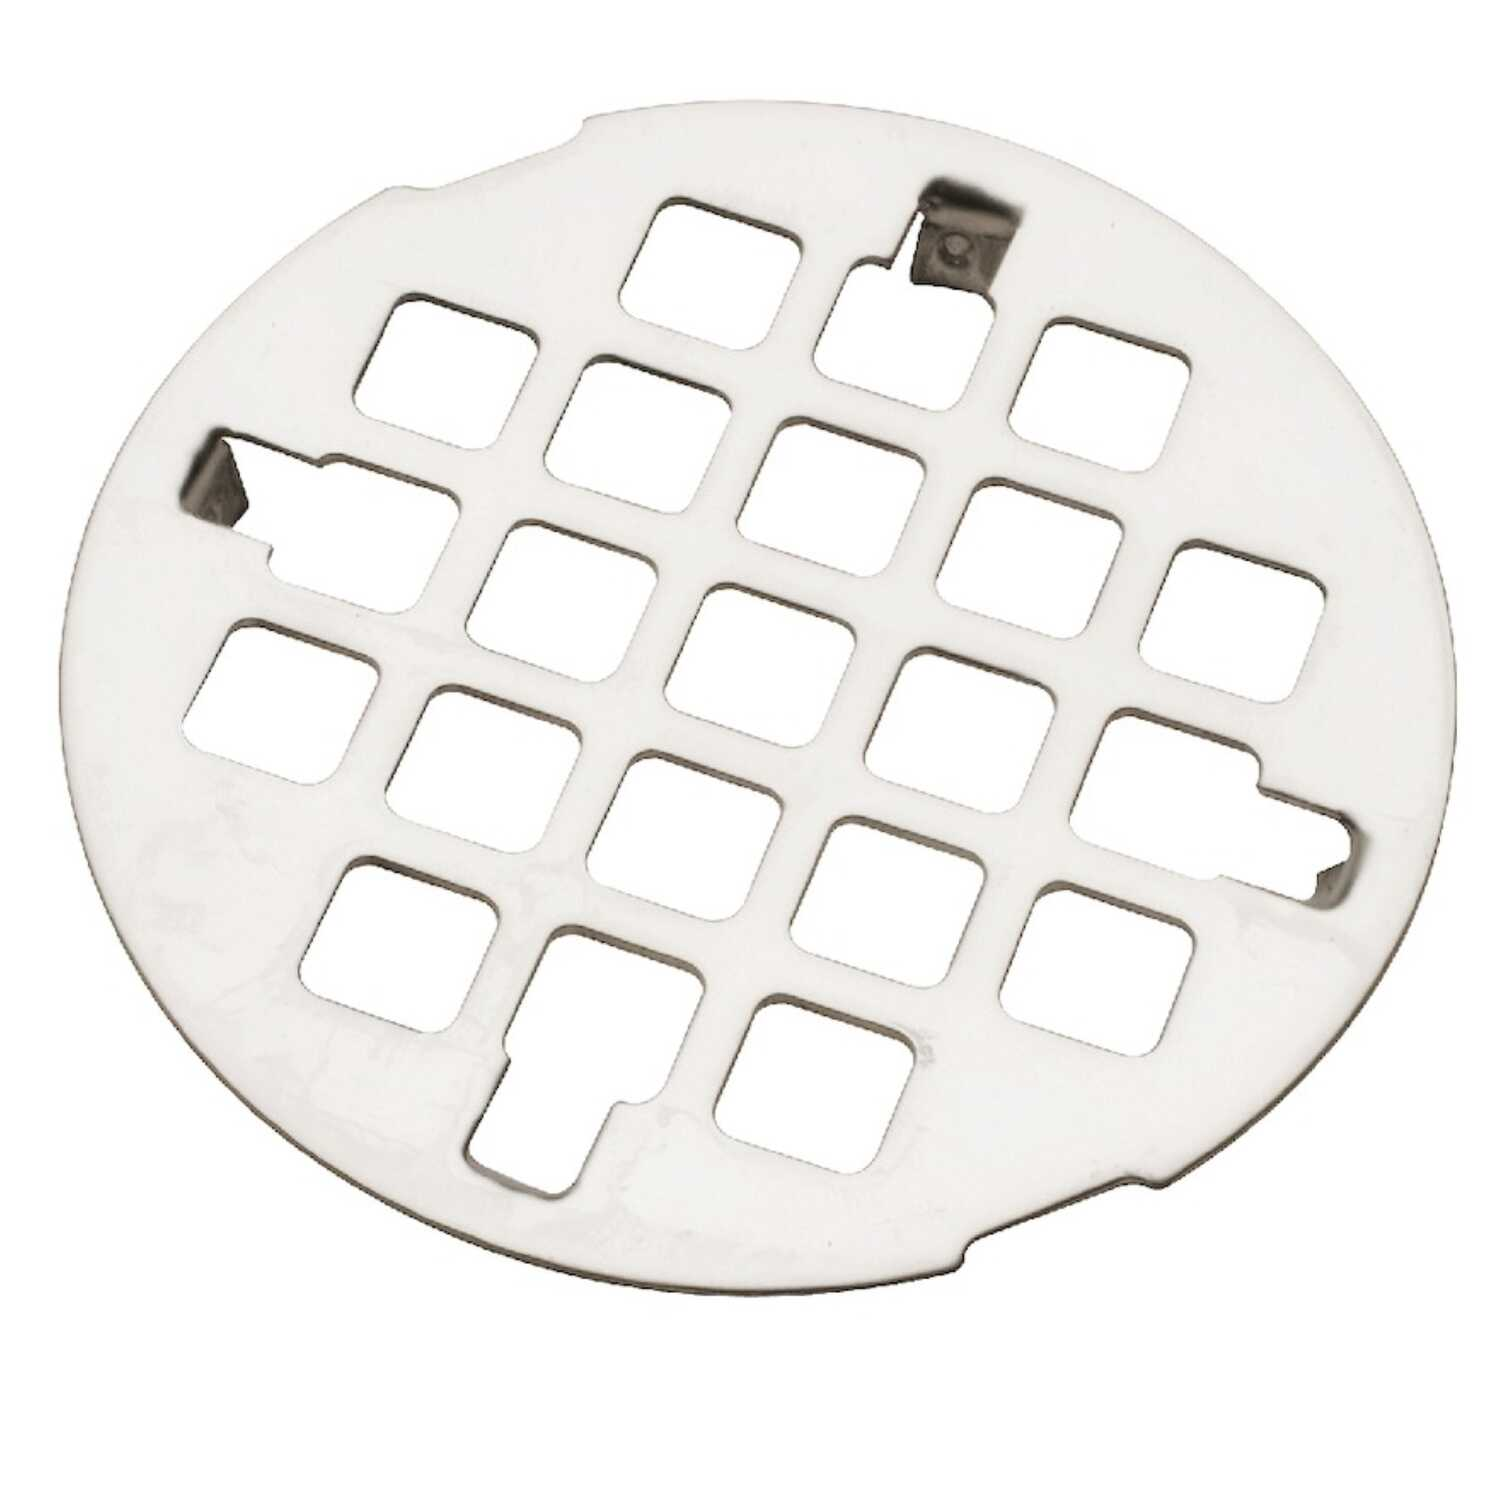 Ace  3-1/4 in. Chrome  Round  Drain Grate